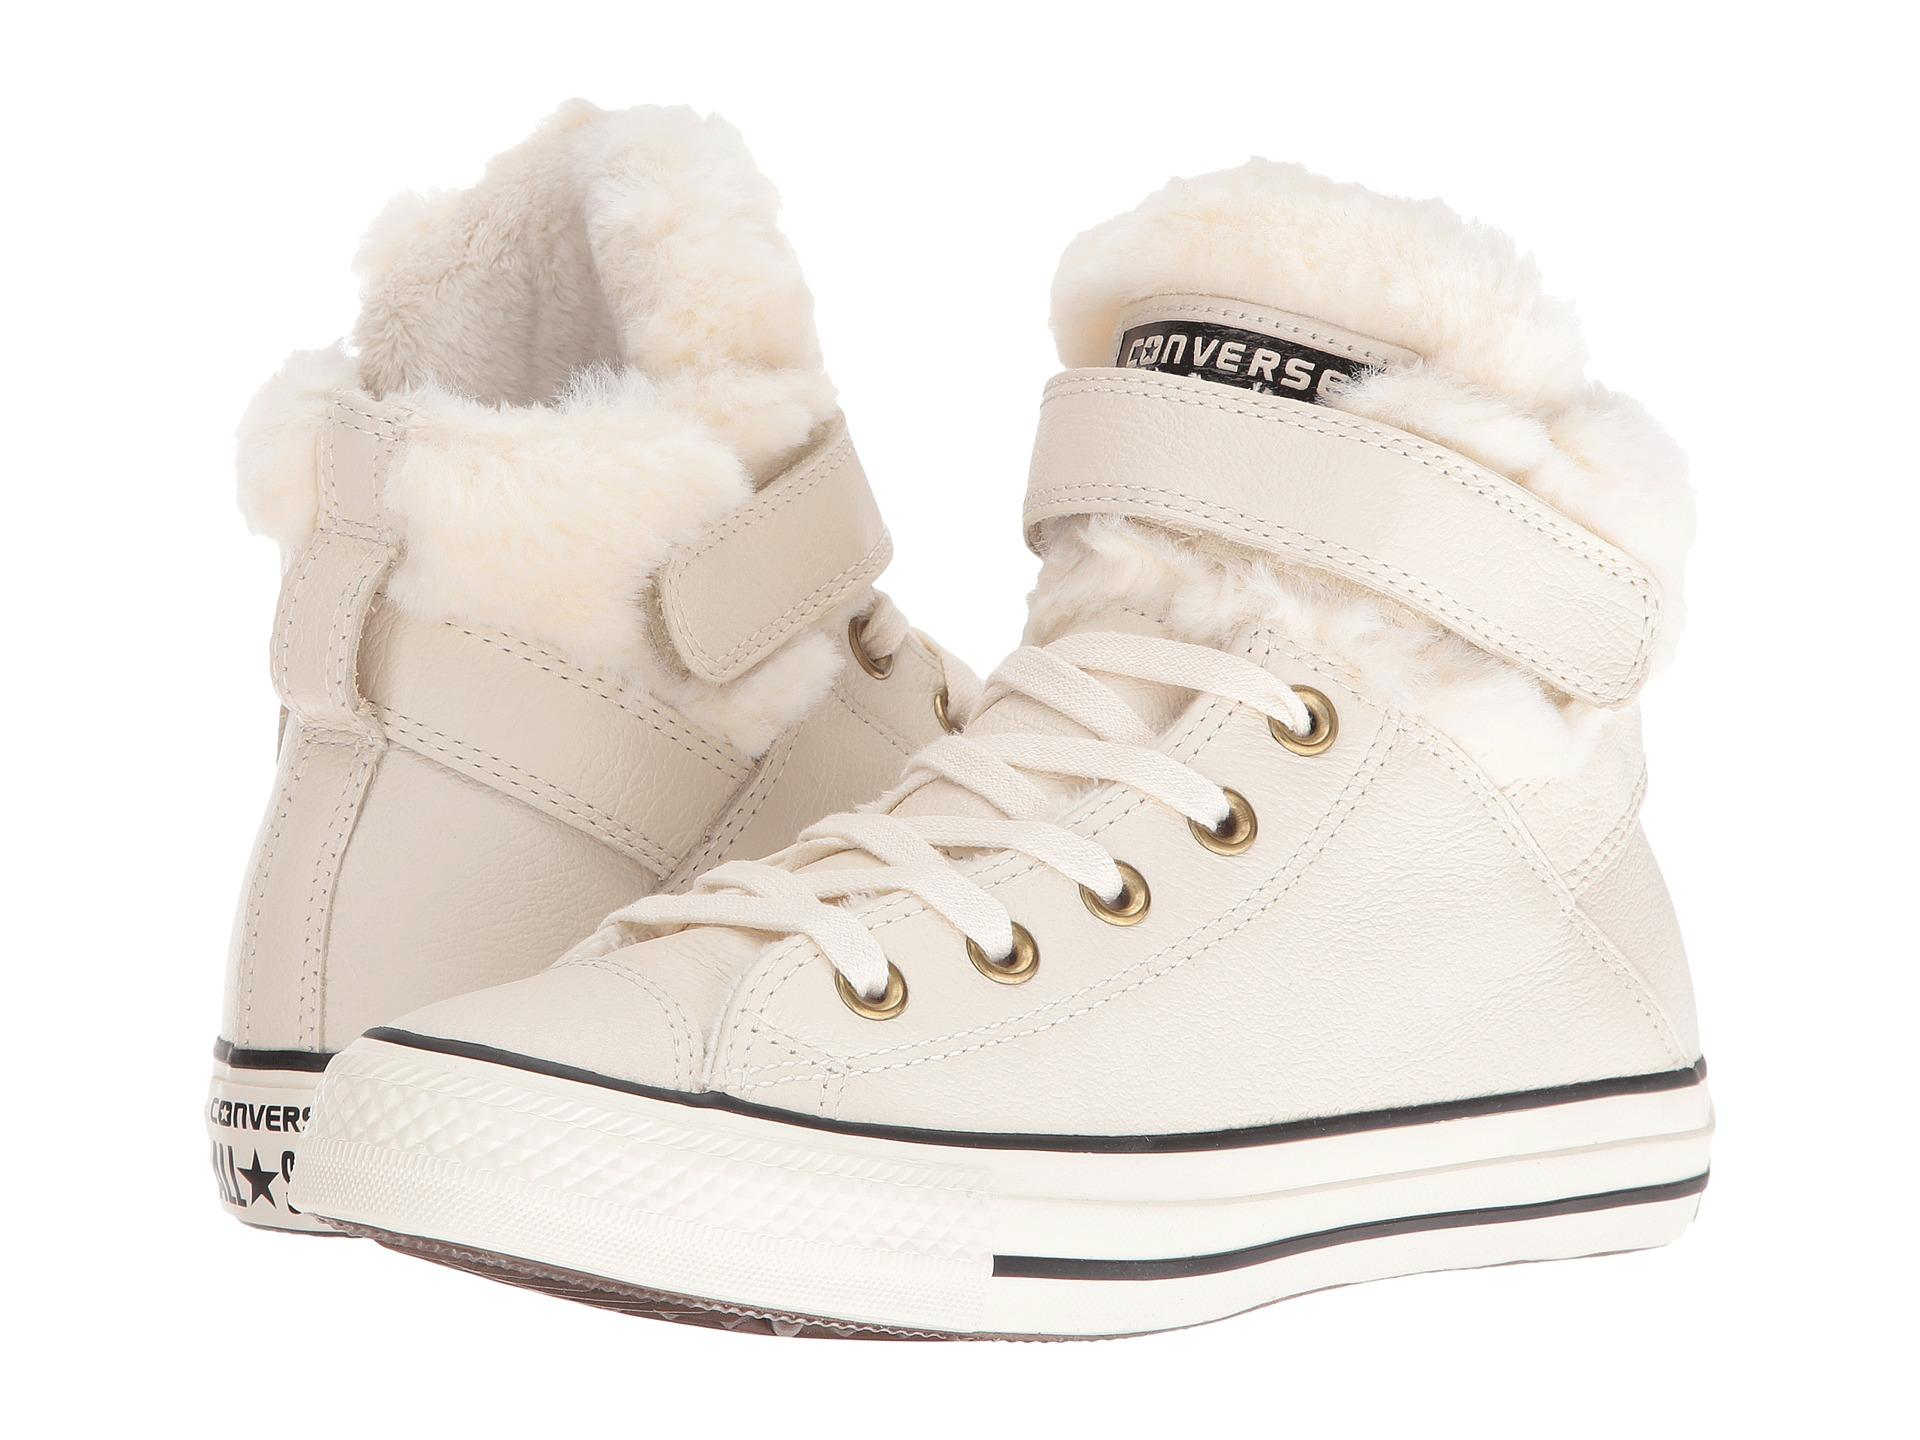 8d1b6d32c9108 Gallery. Previously sold at  Zappos · Women s Converse Chuck Taylor ...